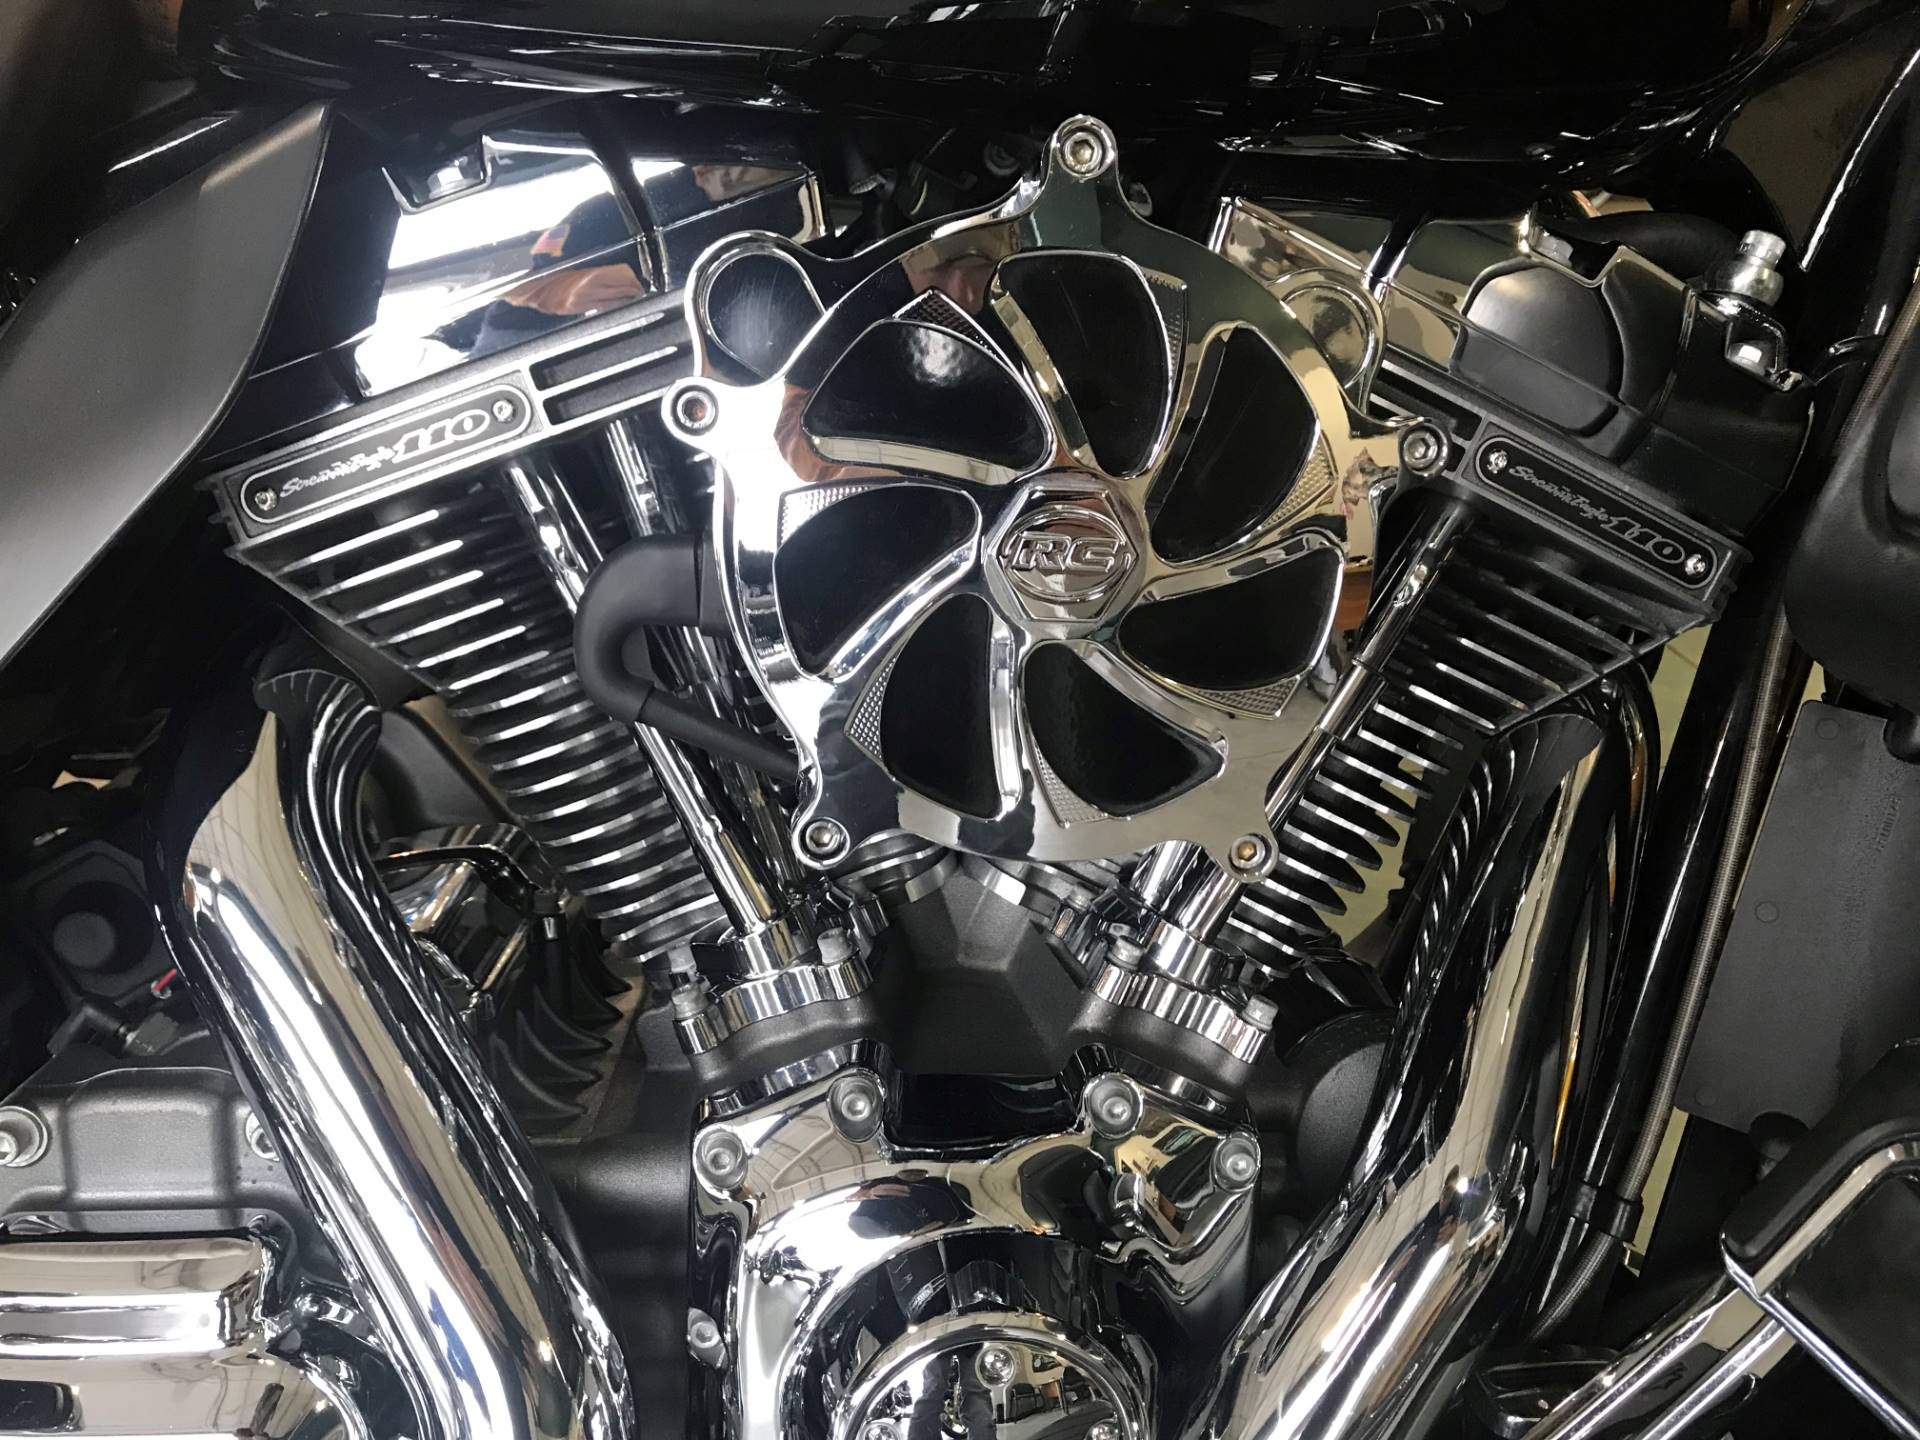 2015 Harley-Davidson CVO™ Limited in Edinburgh, Indiana - Photo 6